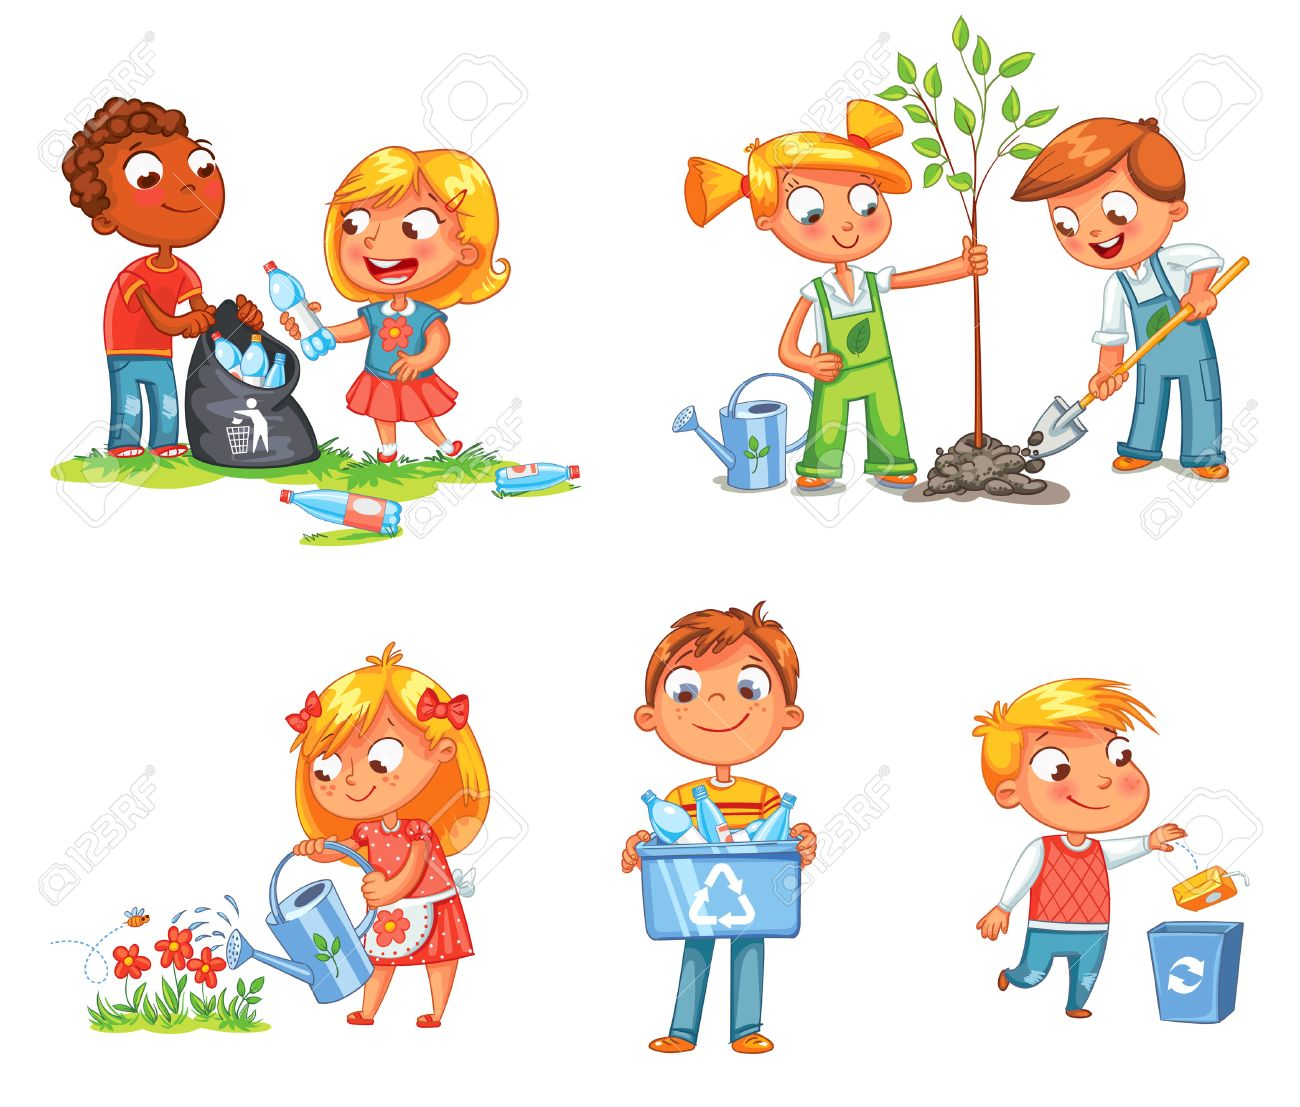 Save Earth. Waste recycling. Children planted young trees. Girl watering flowers from watering can. Kids gathering plastic bottles for recycling. Boy throws litter into bin. Isolated white background - 69020151